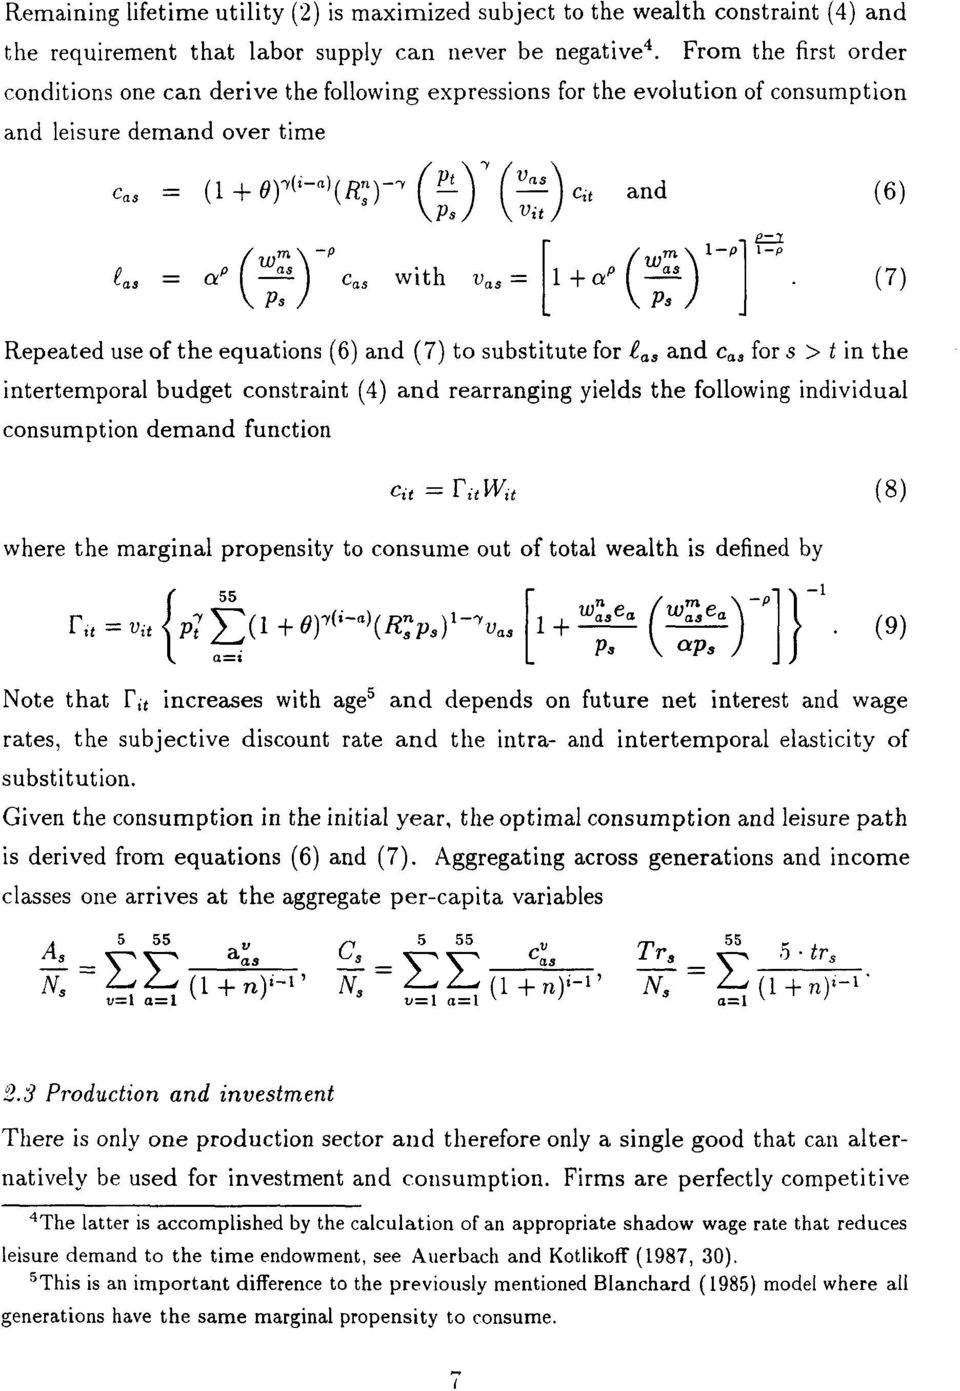 use of the equations (6) and (7) to Substitute for as and c as for s > t in the intertemporal budget constraint (4) and rearranging yields the following individual consumption demand function cu =